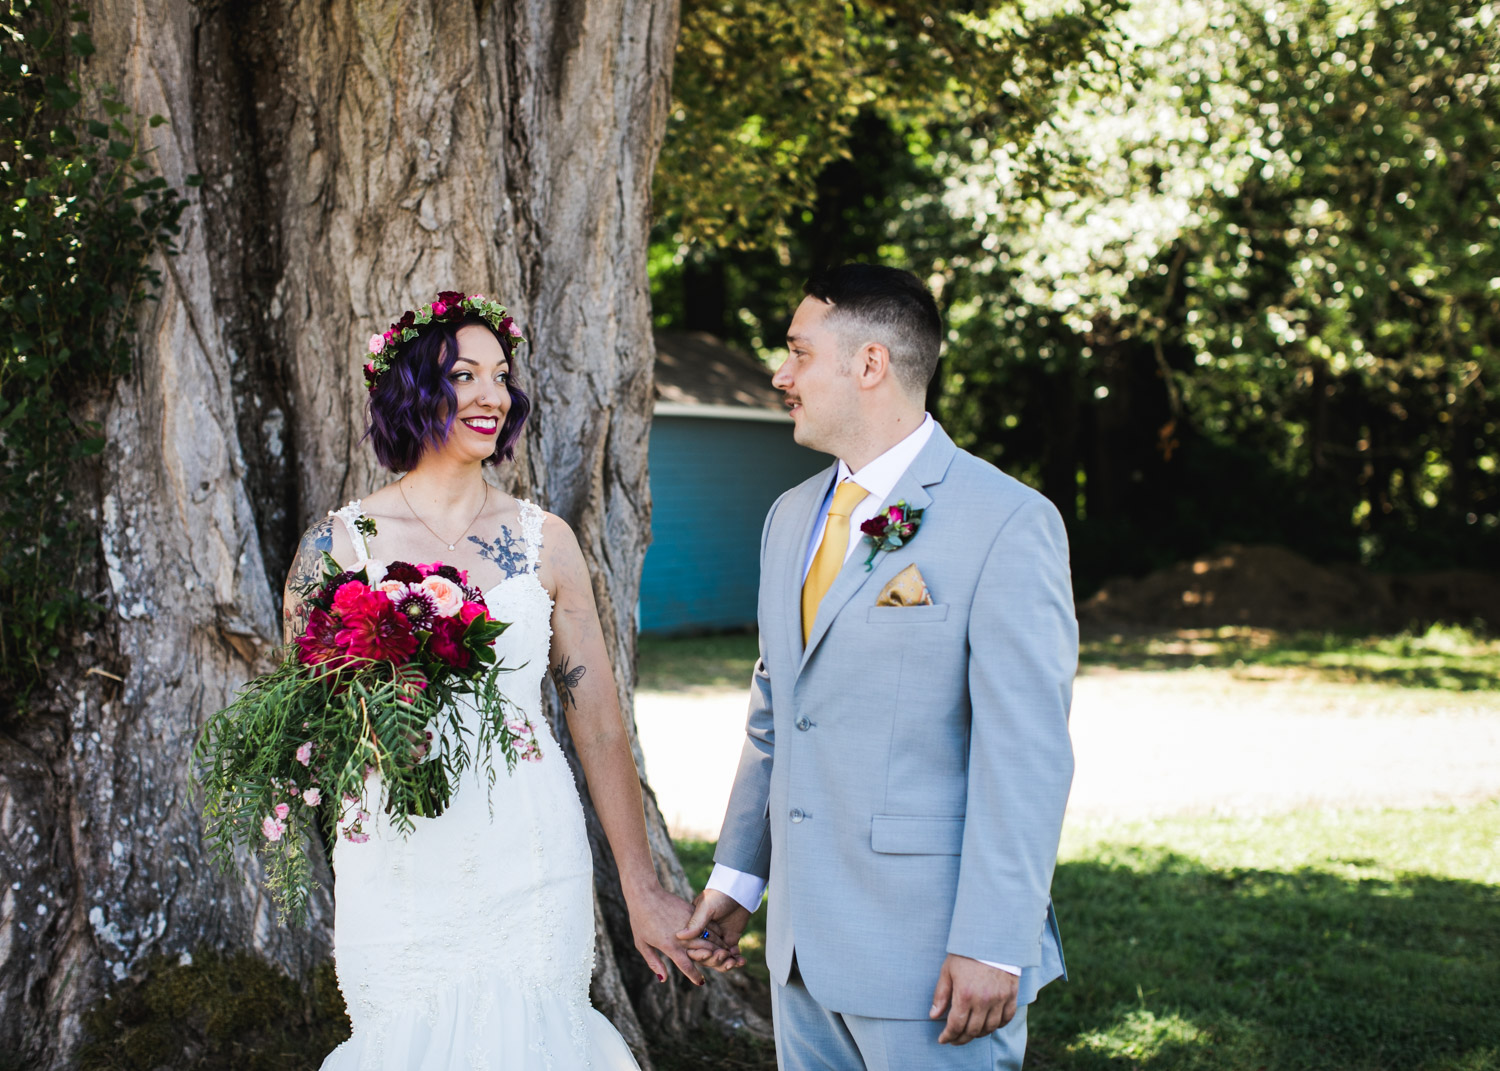 Portland-Oregon-Wedding-Photographer-Website-Images_145.jpg